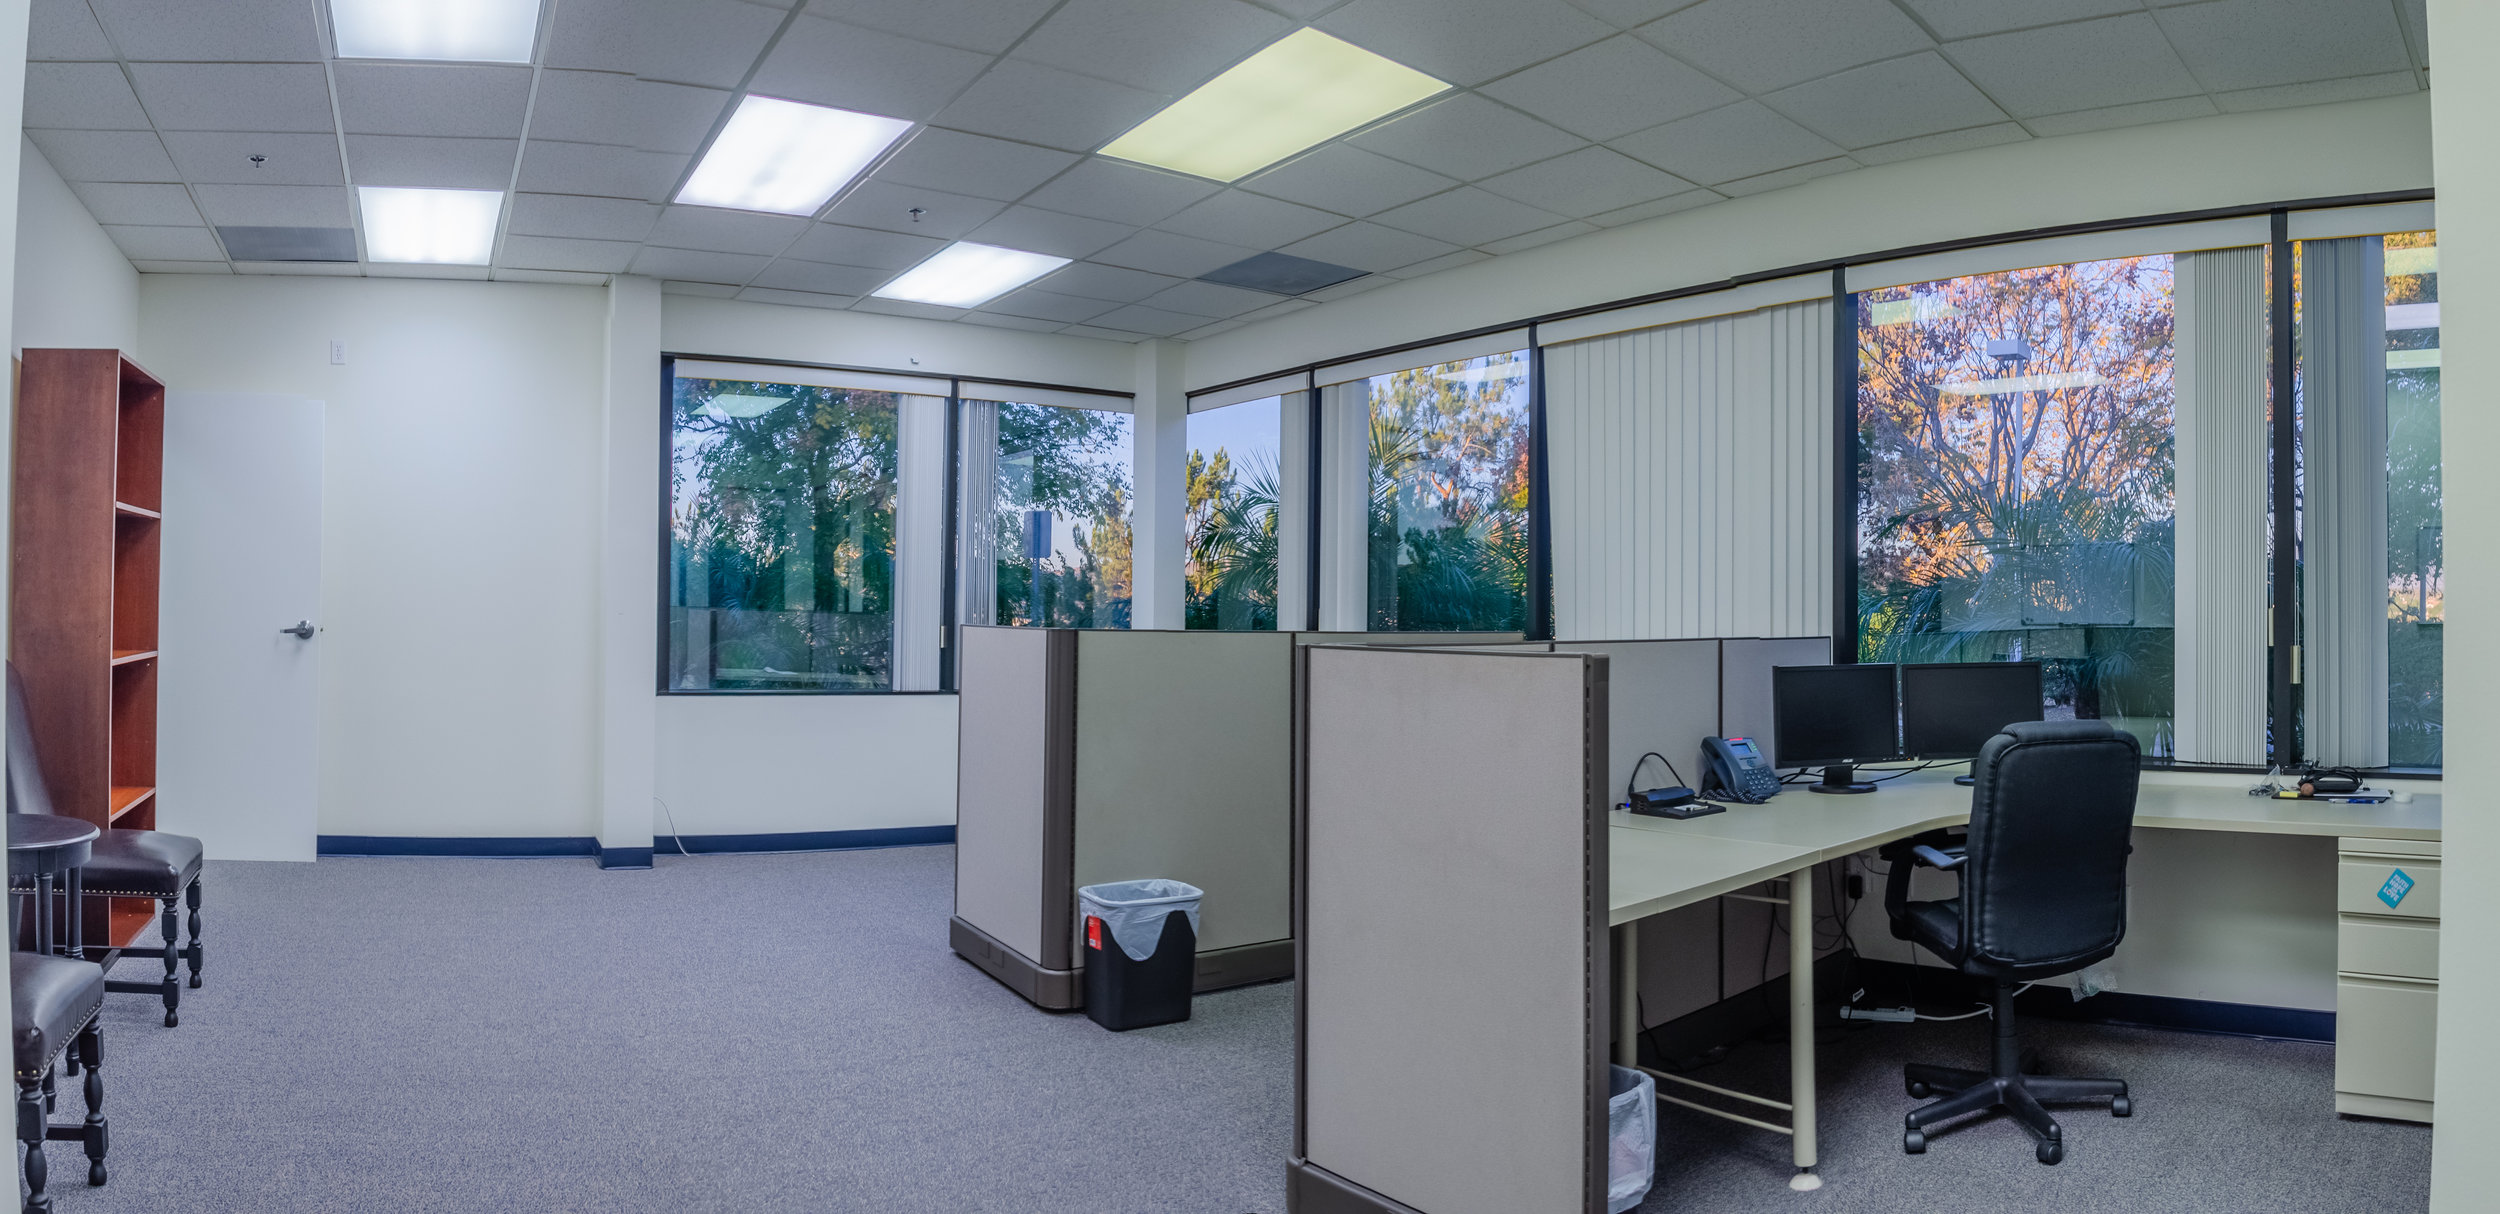 Big Windows In Open Office Space (Click To View)